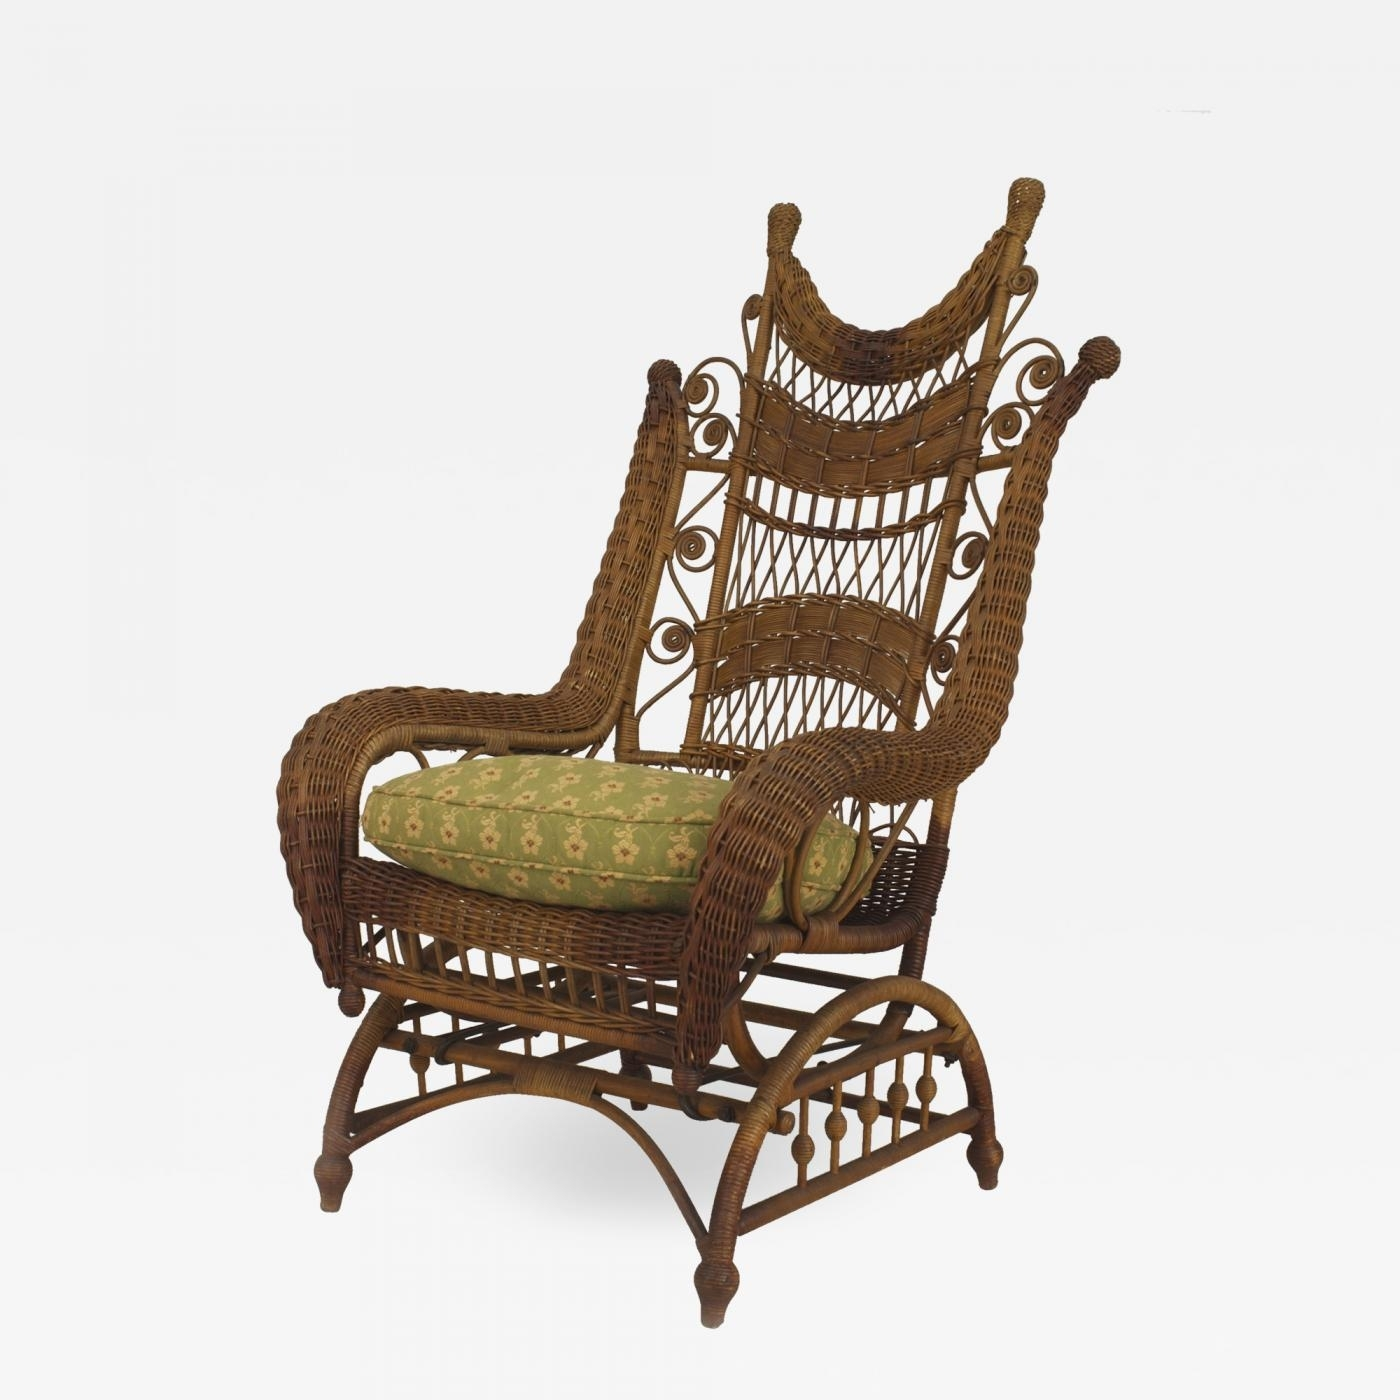 Heywood Wakefield – American Victorian Natural Wicker Ornate High Intended For Victorian Rocking Chairs (View 15 of 15)